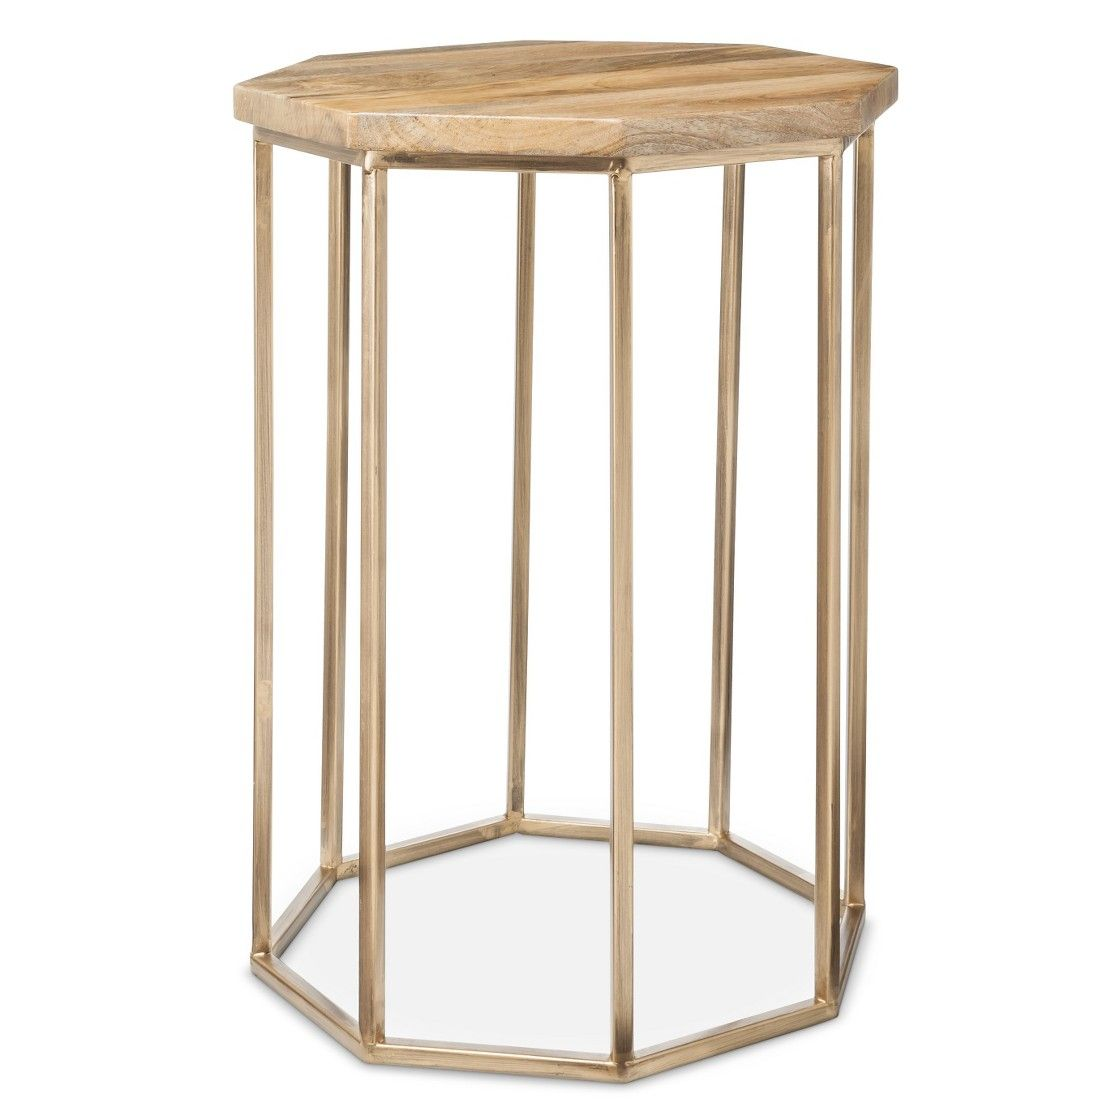 engaging gold accent table target drum end shades threshold marble tables tiffany contemporary outdoor room kijiji trestle lighting lamps color ideas redmond lovell design small